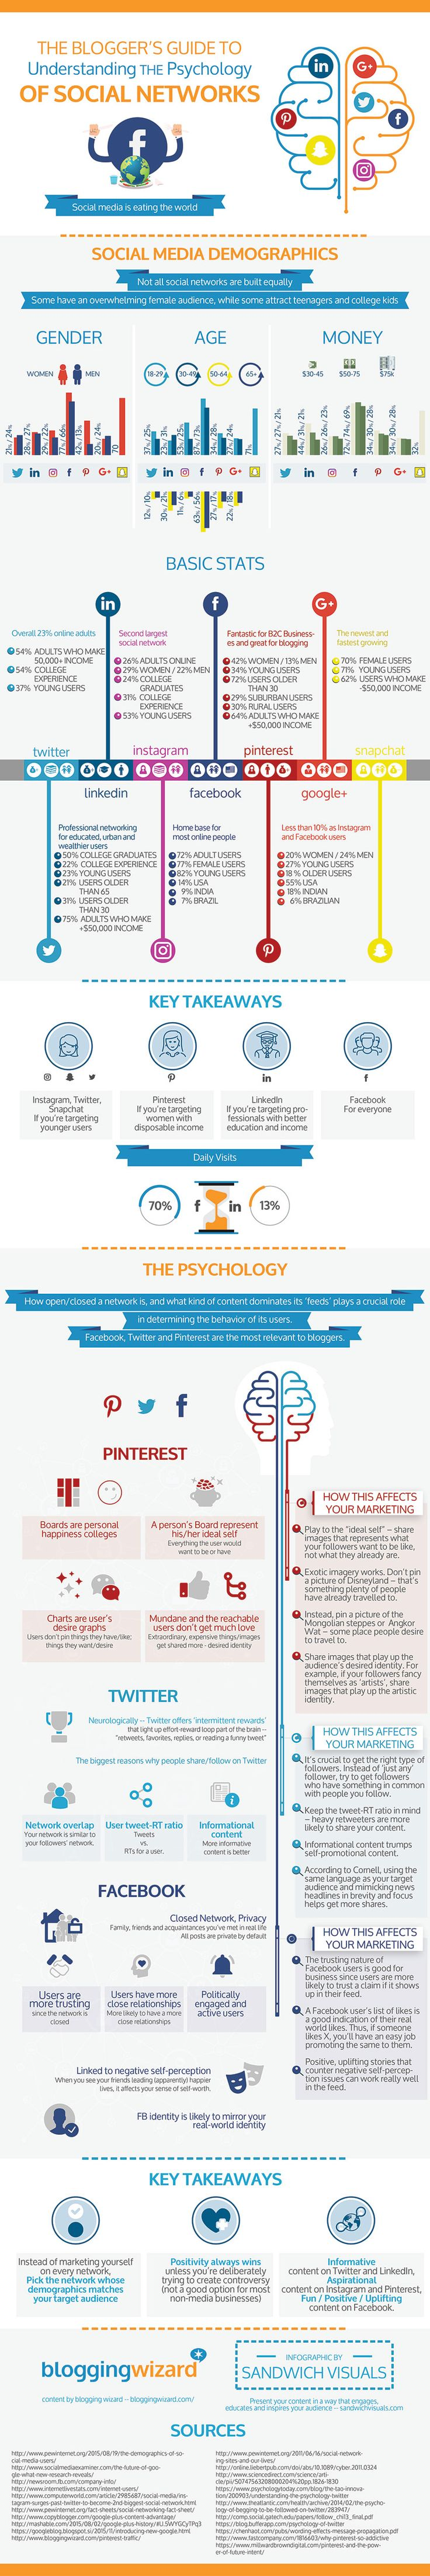 How The Psychology Of Social Networks Can Improve Your Marketing [INFOGRAPHIC] via @adamjc